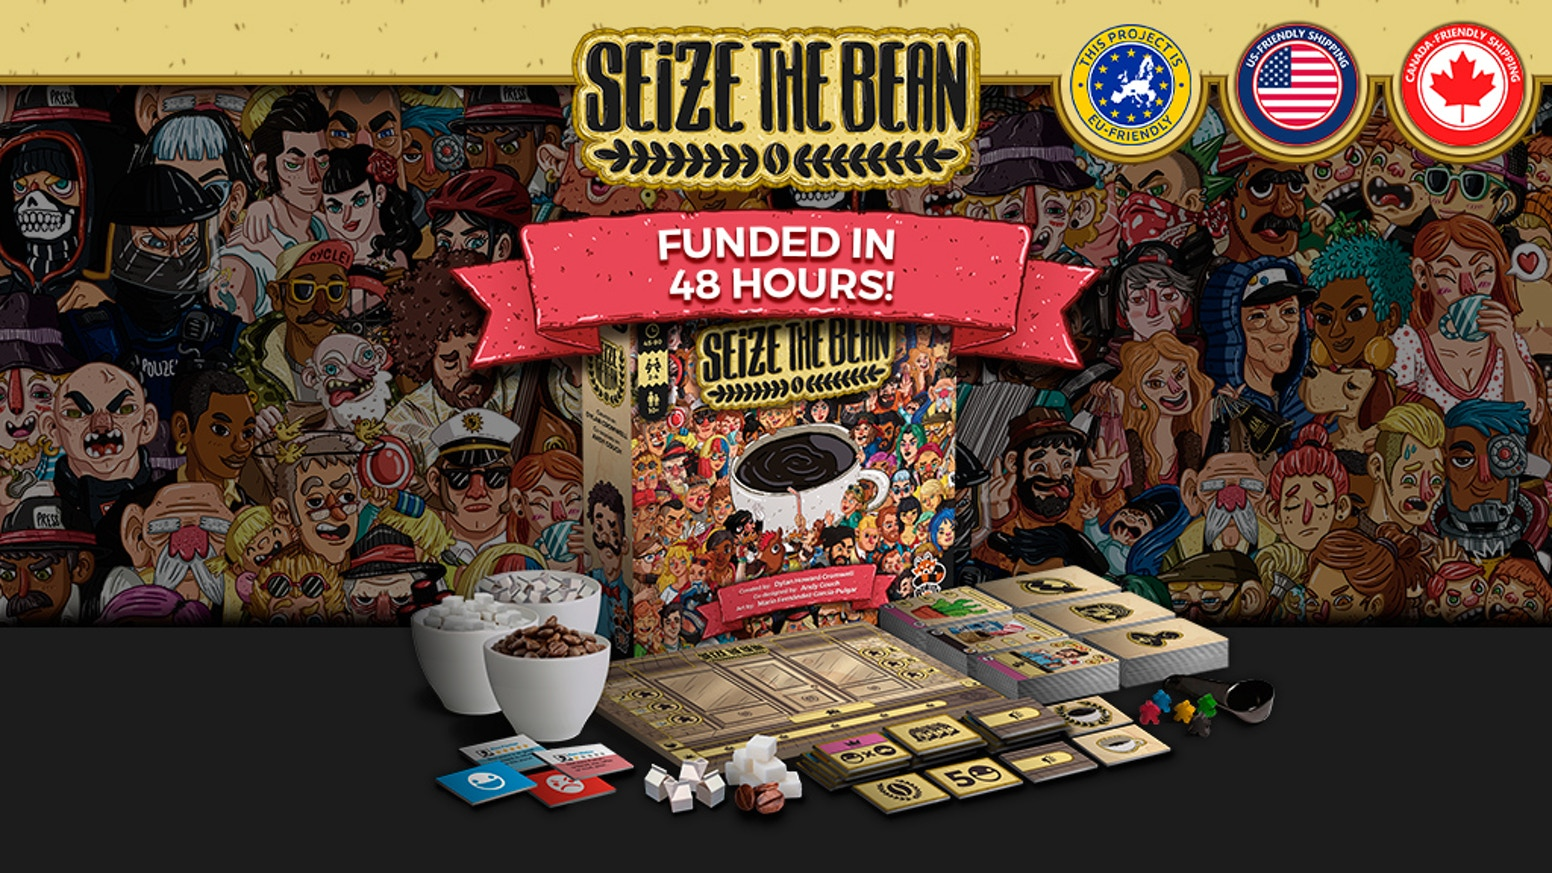 Seize the Bean - A Light-Hearted Deck Builder about Berlin! by ...